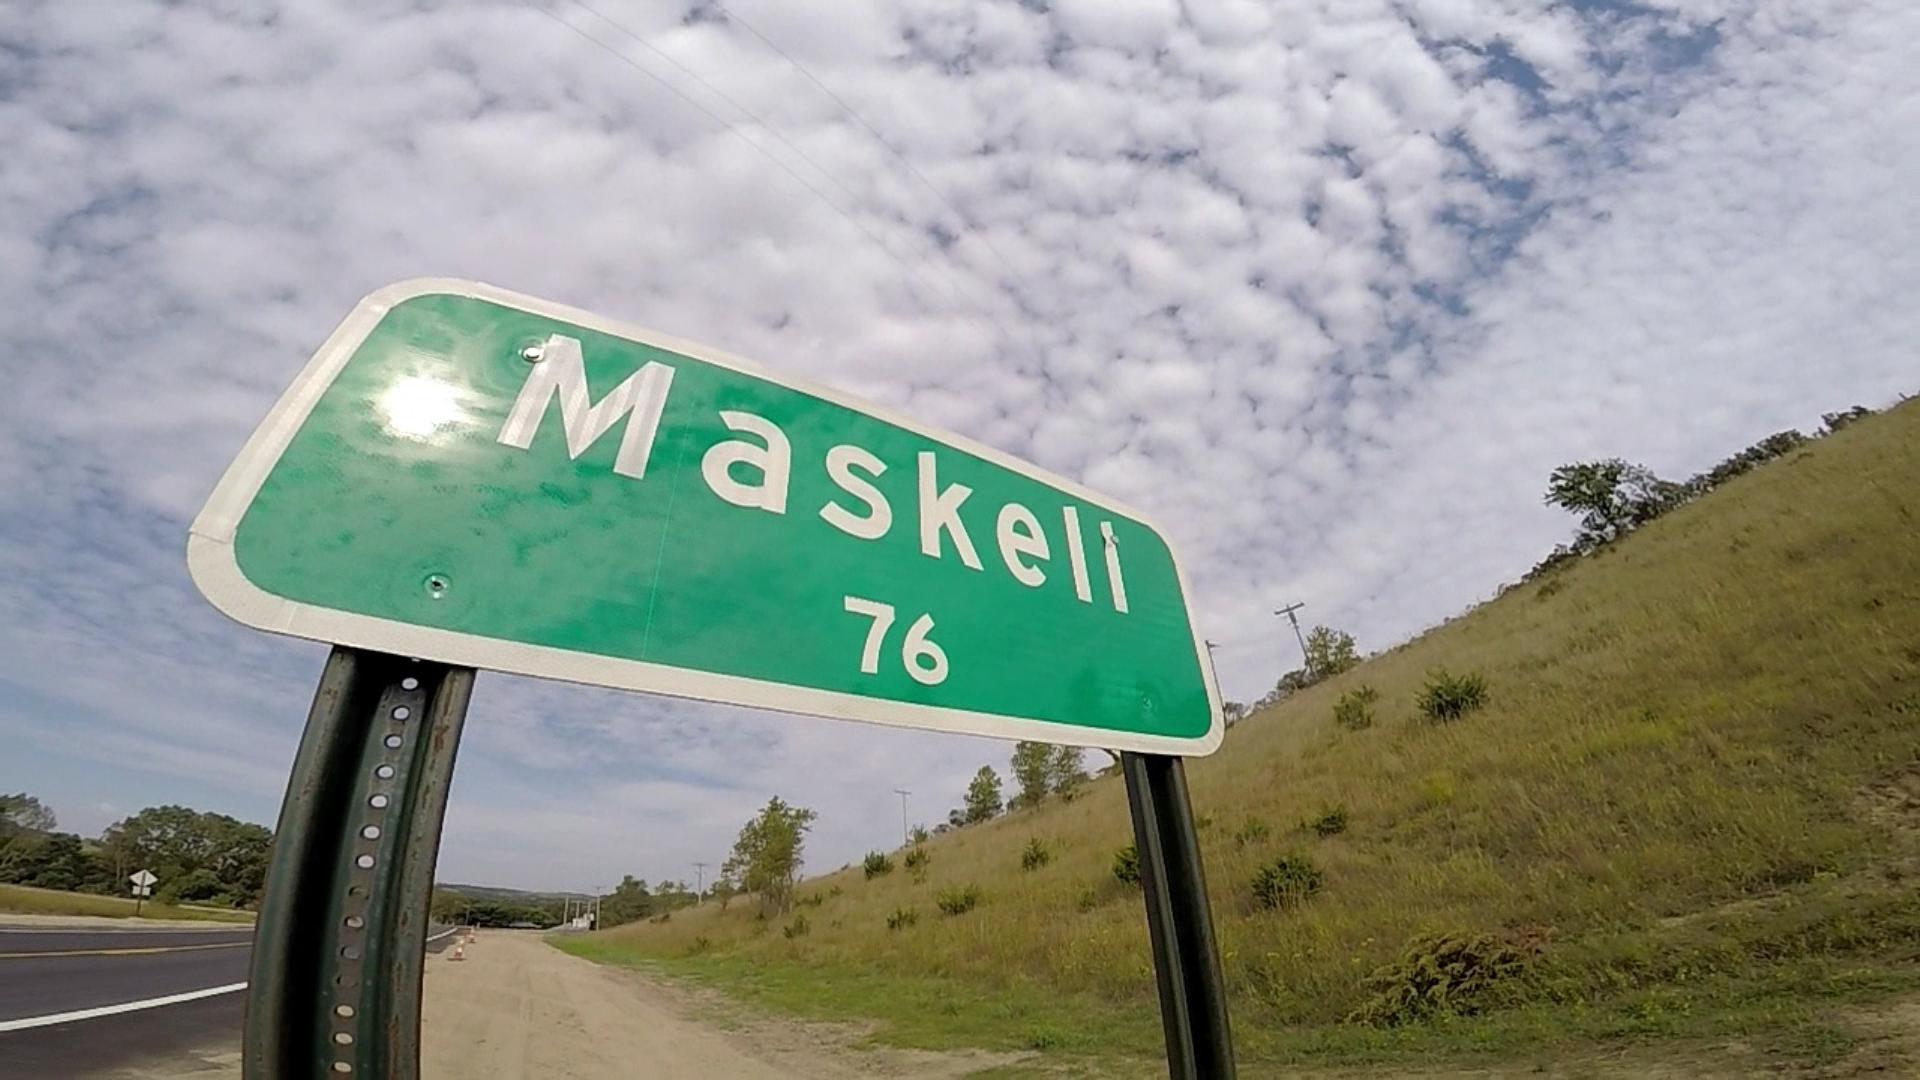 Maskell, NE. Population: 76. Even towns as small as these still have their stories.